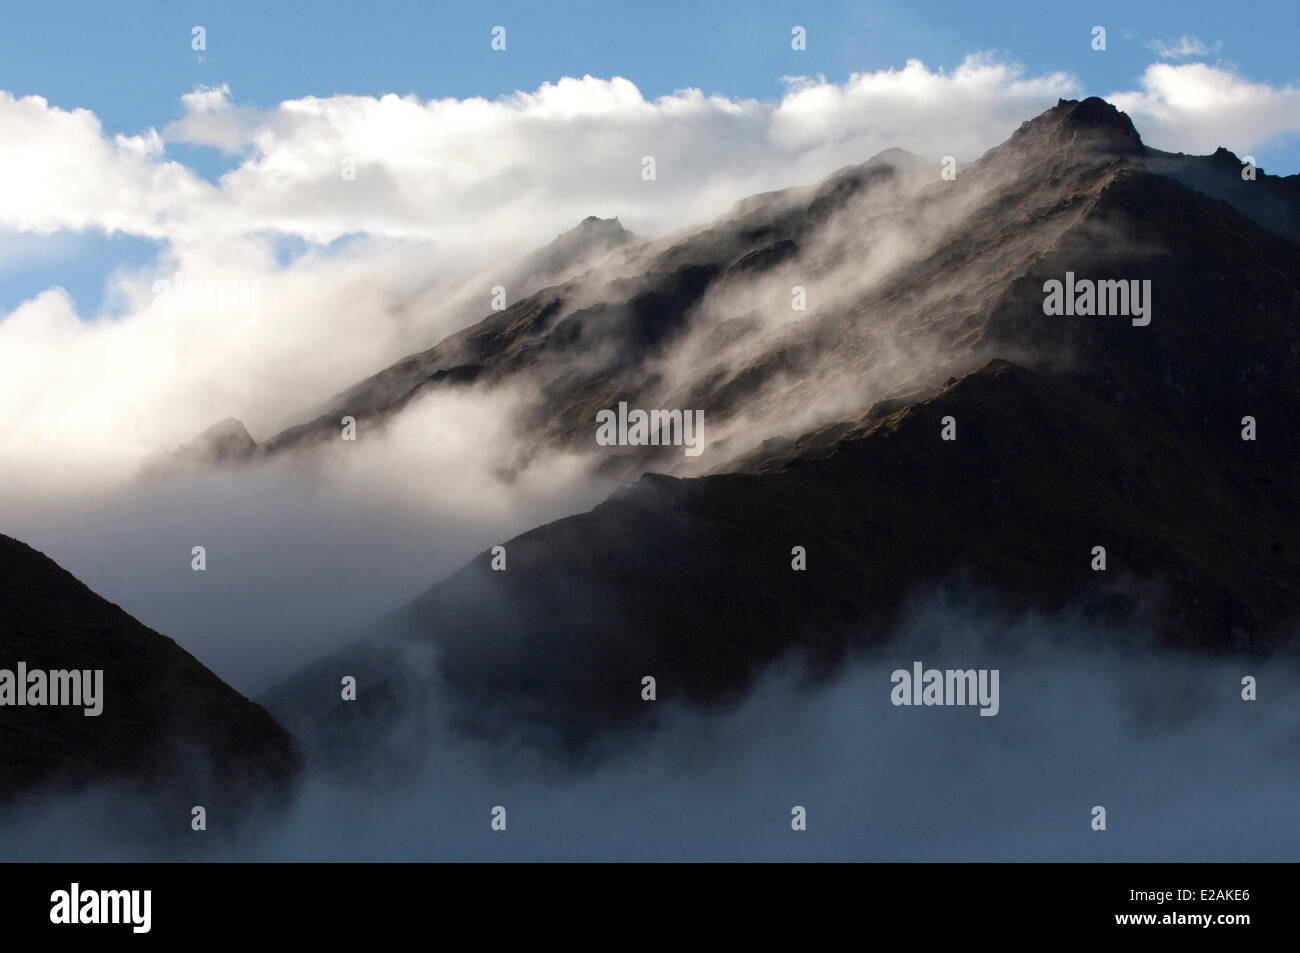 Peru, Carabaya Cordillera, Sinakara Range, Cuzco Province, Q'ero indigenous people, the ultimate descendants - Stock Image